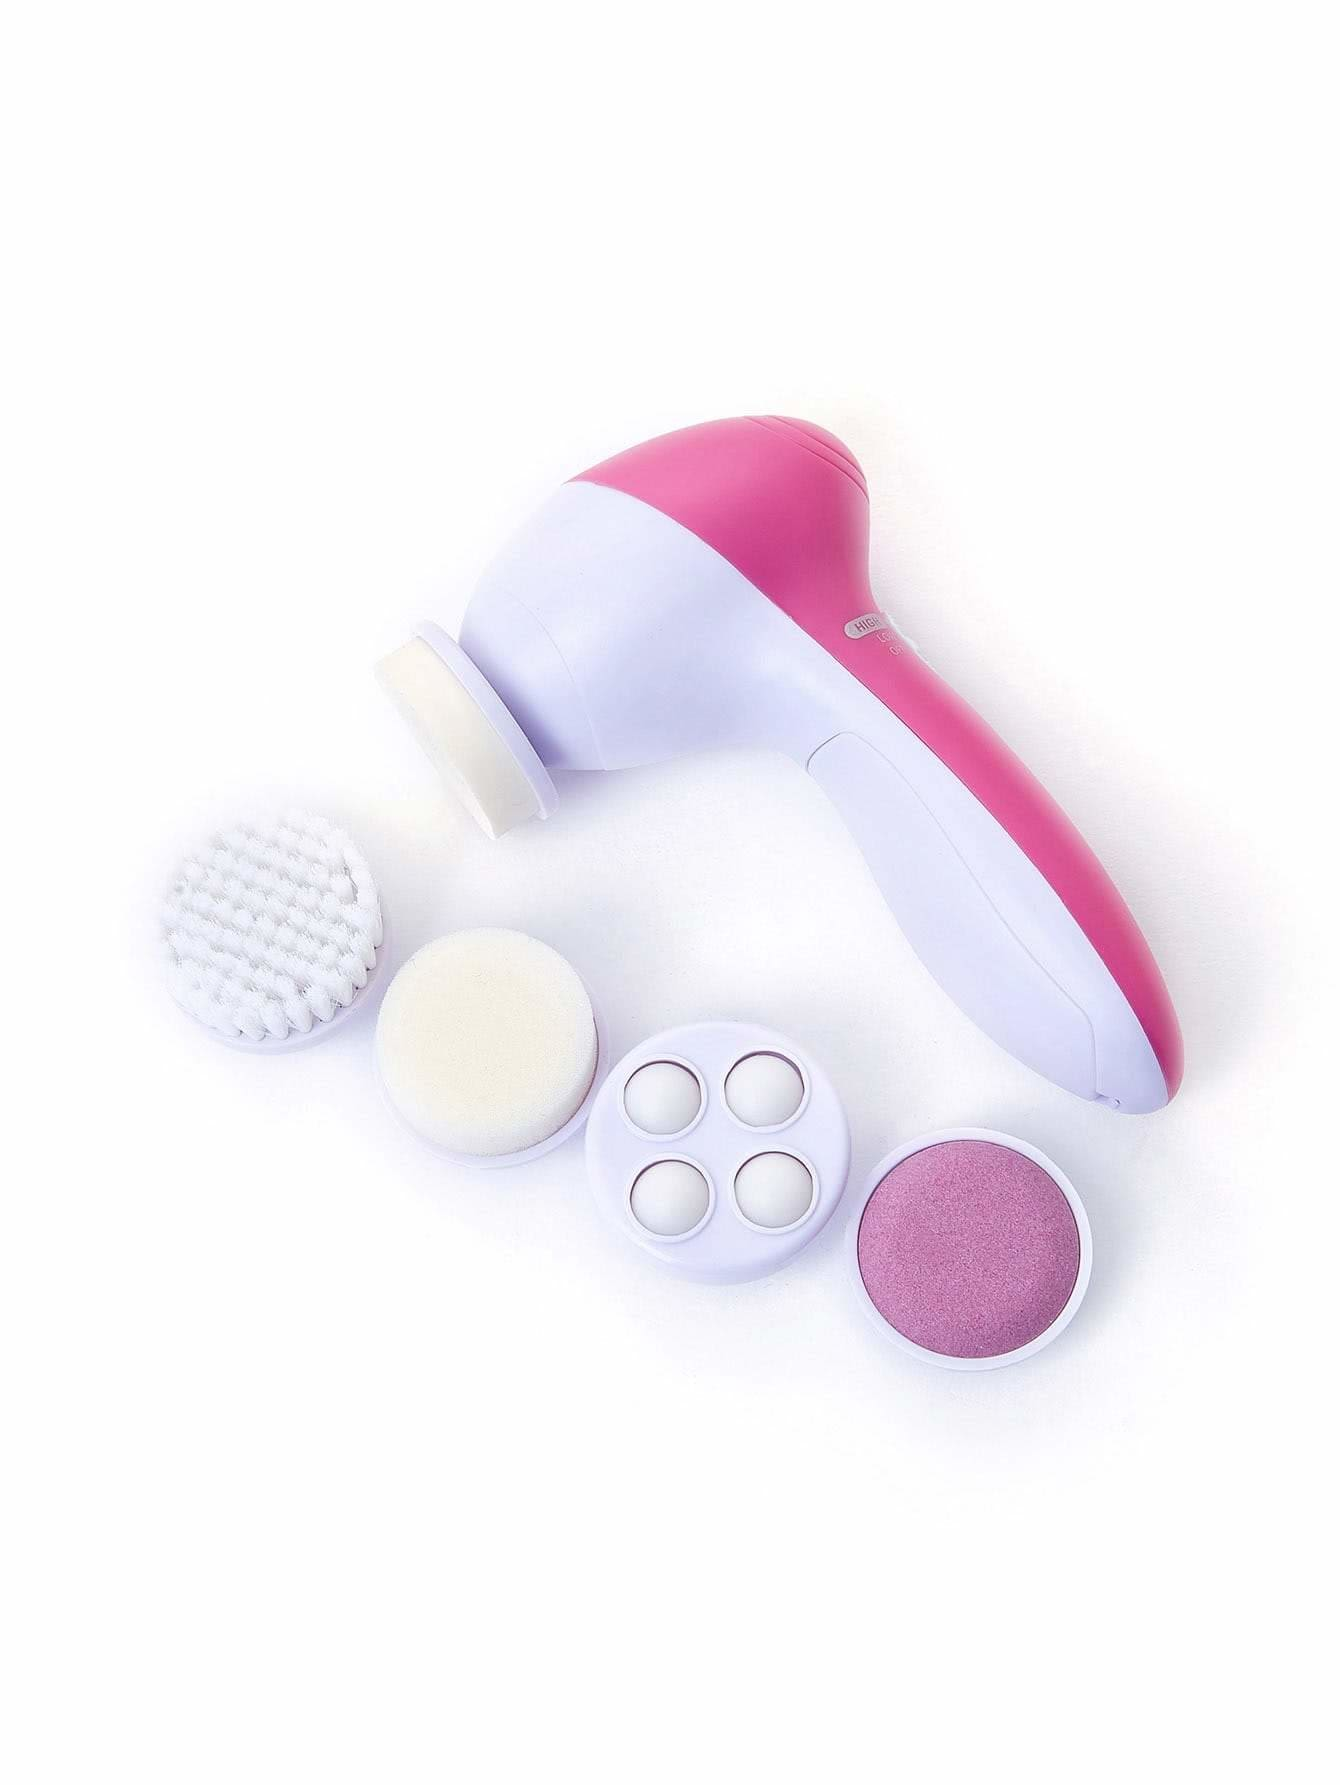 Two Tone Cleansing Instrument With Brush - Beauty Tools